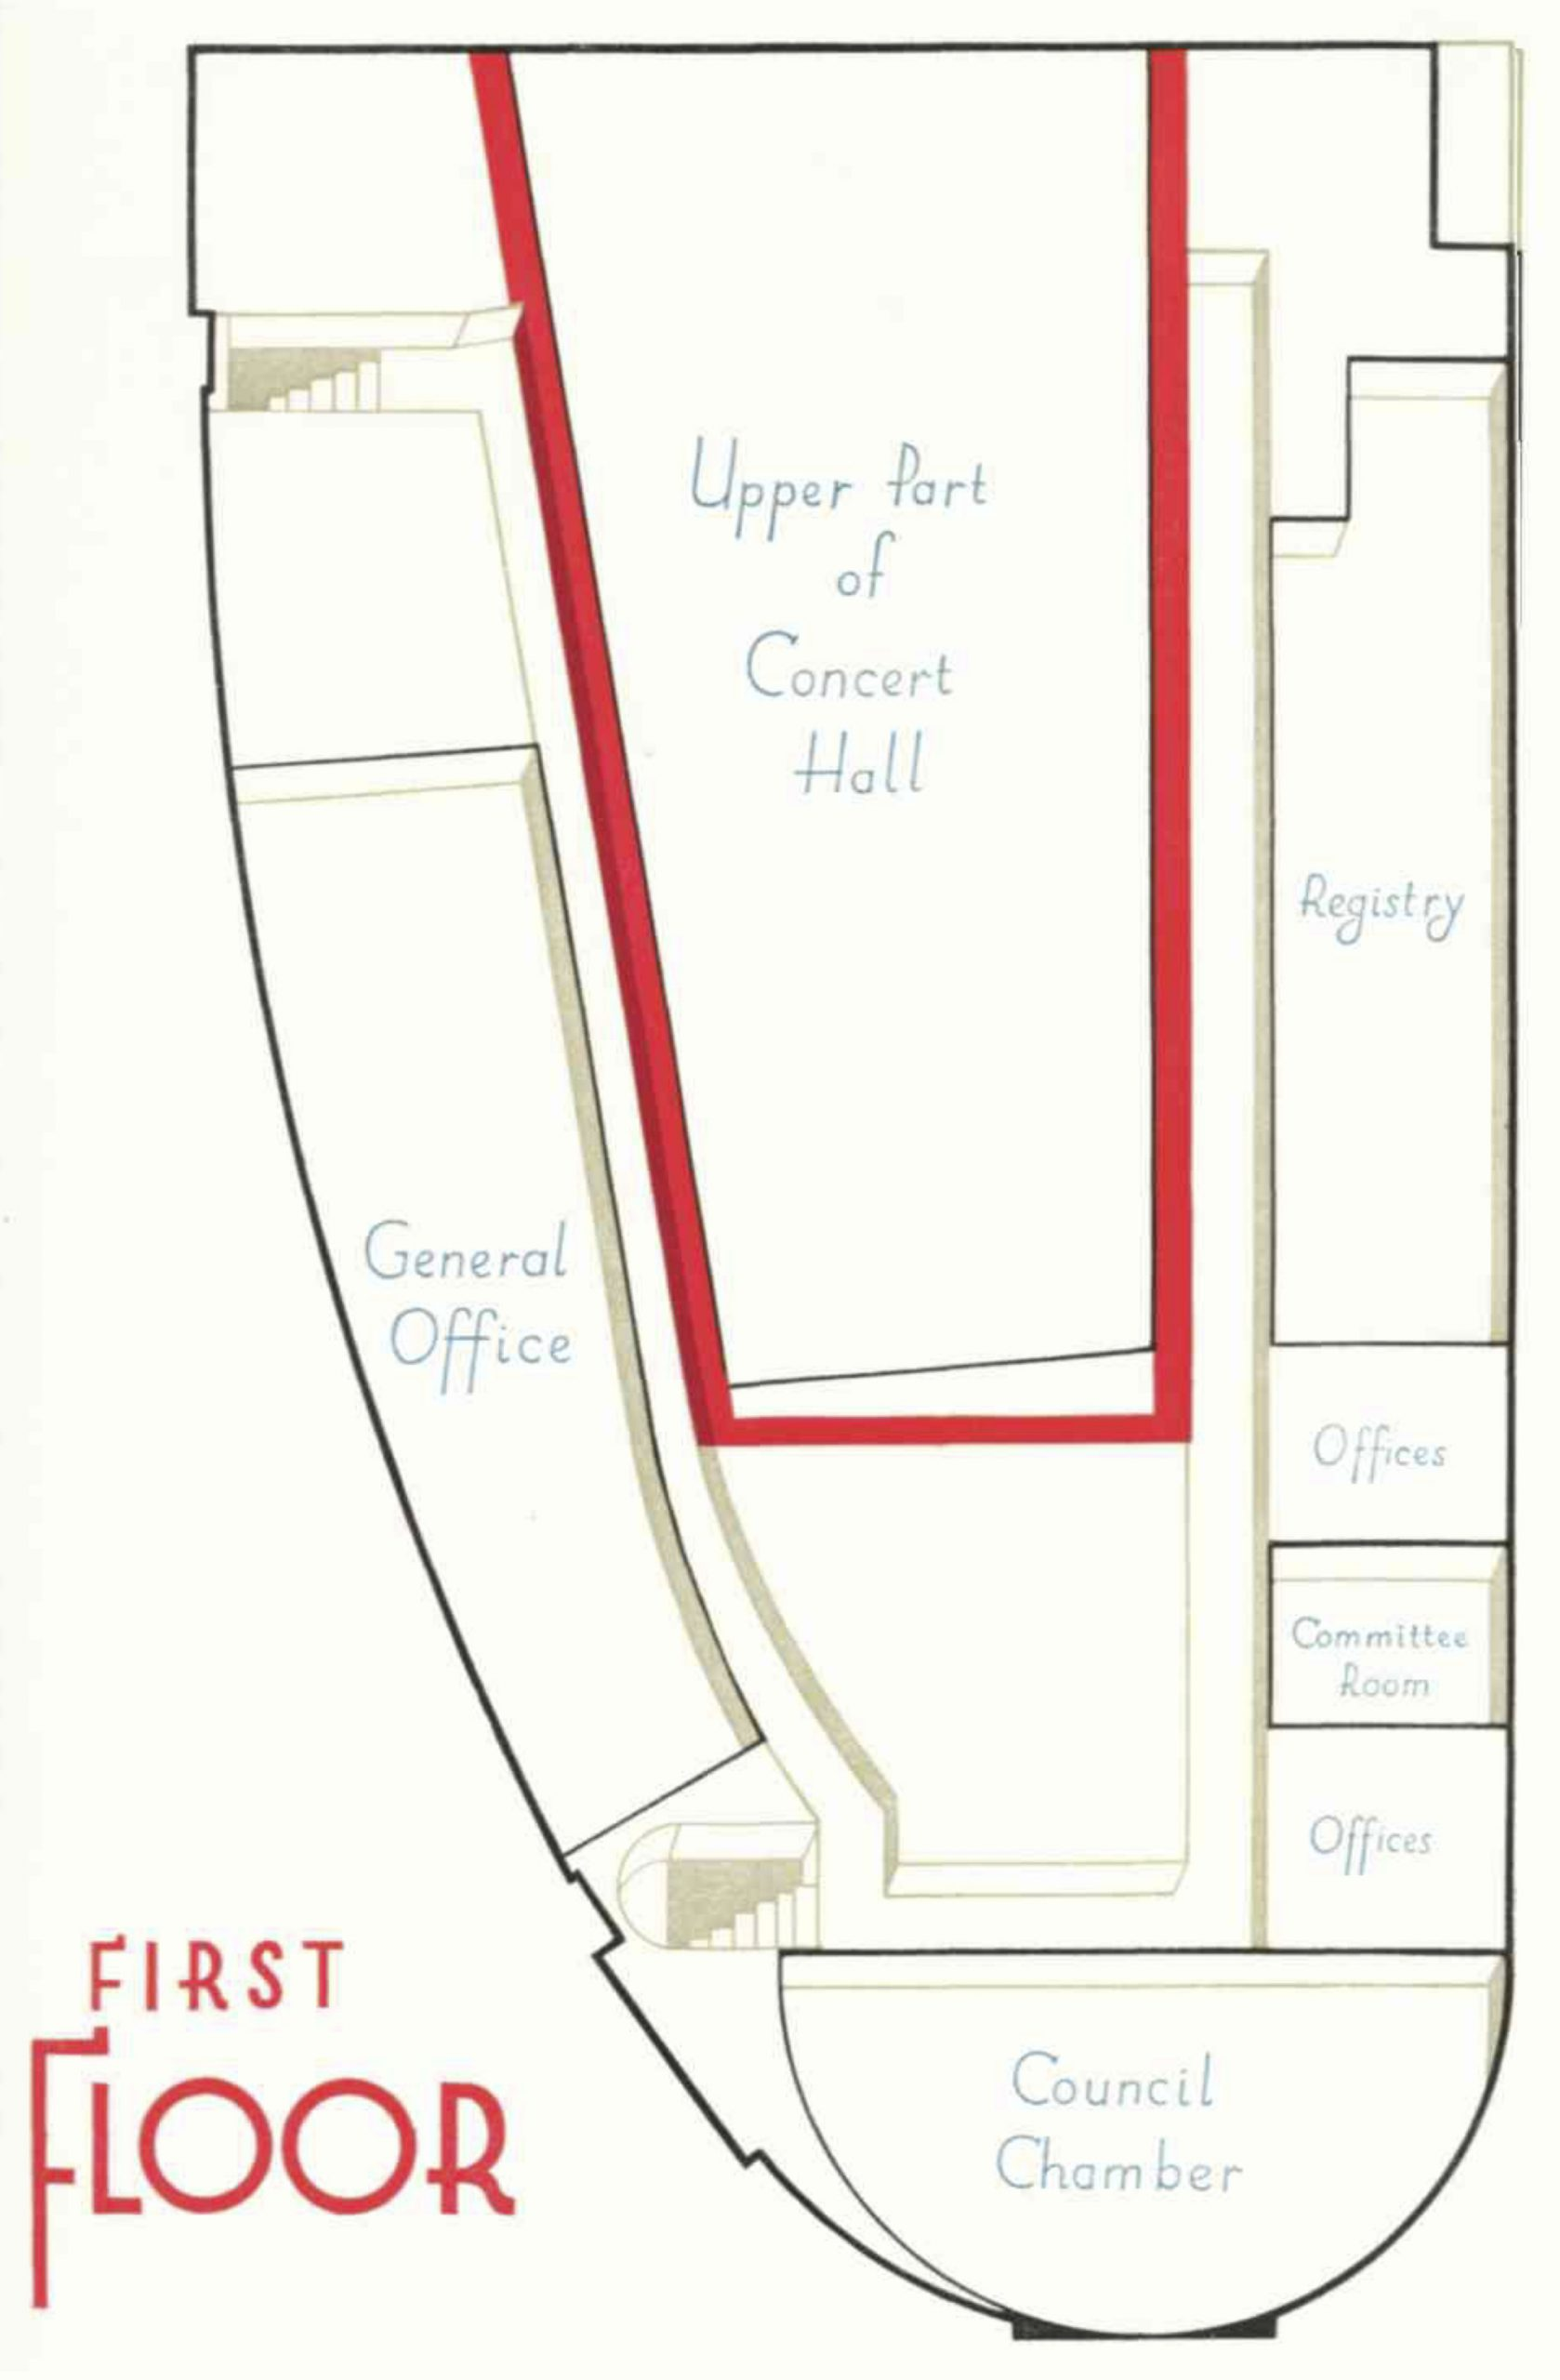 Diagram of the first floor